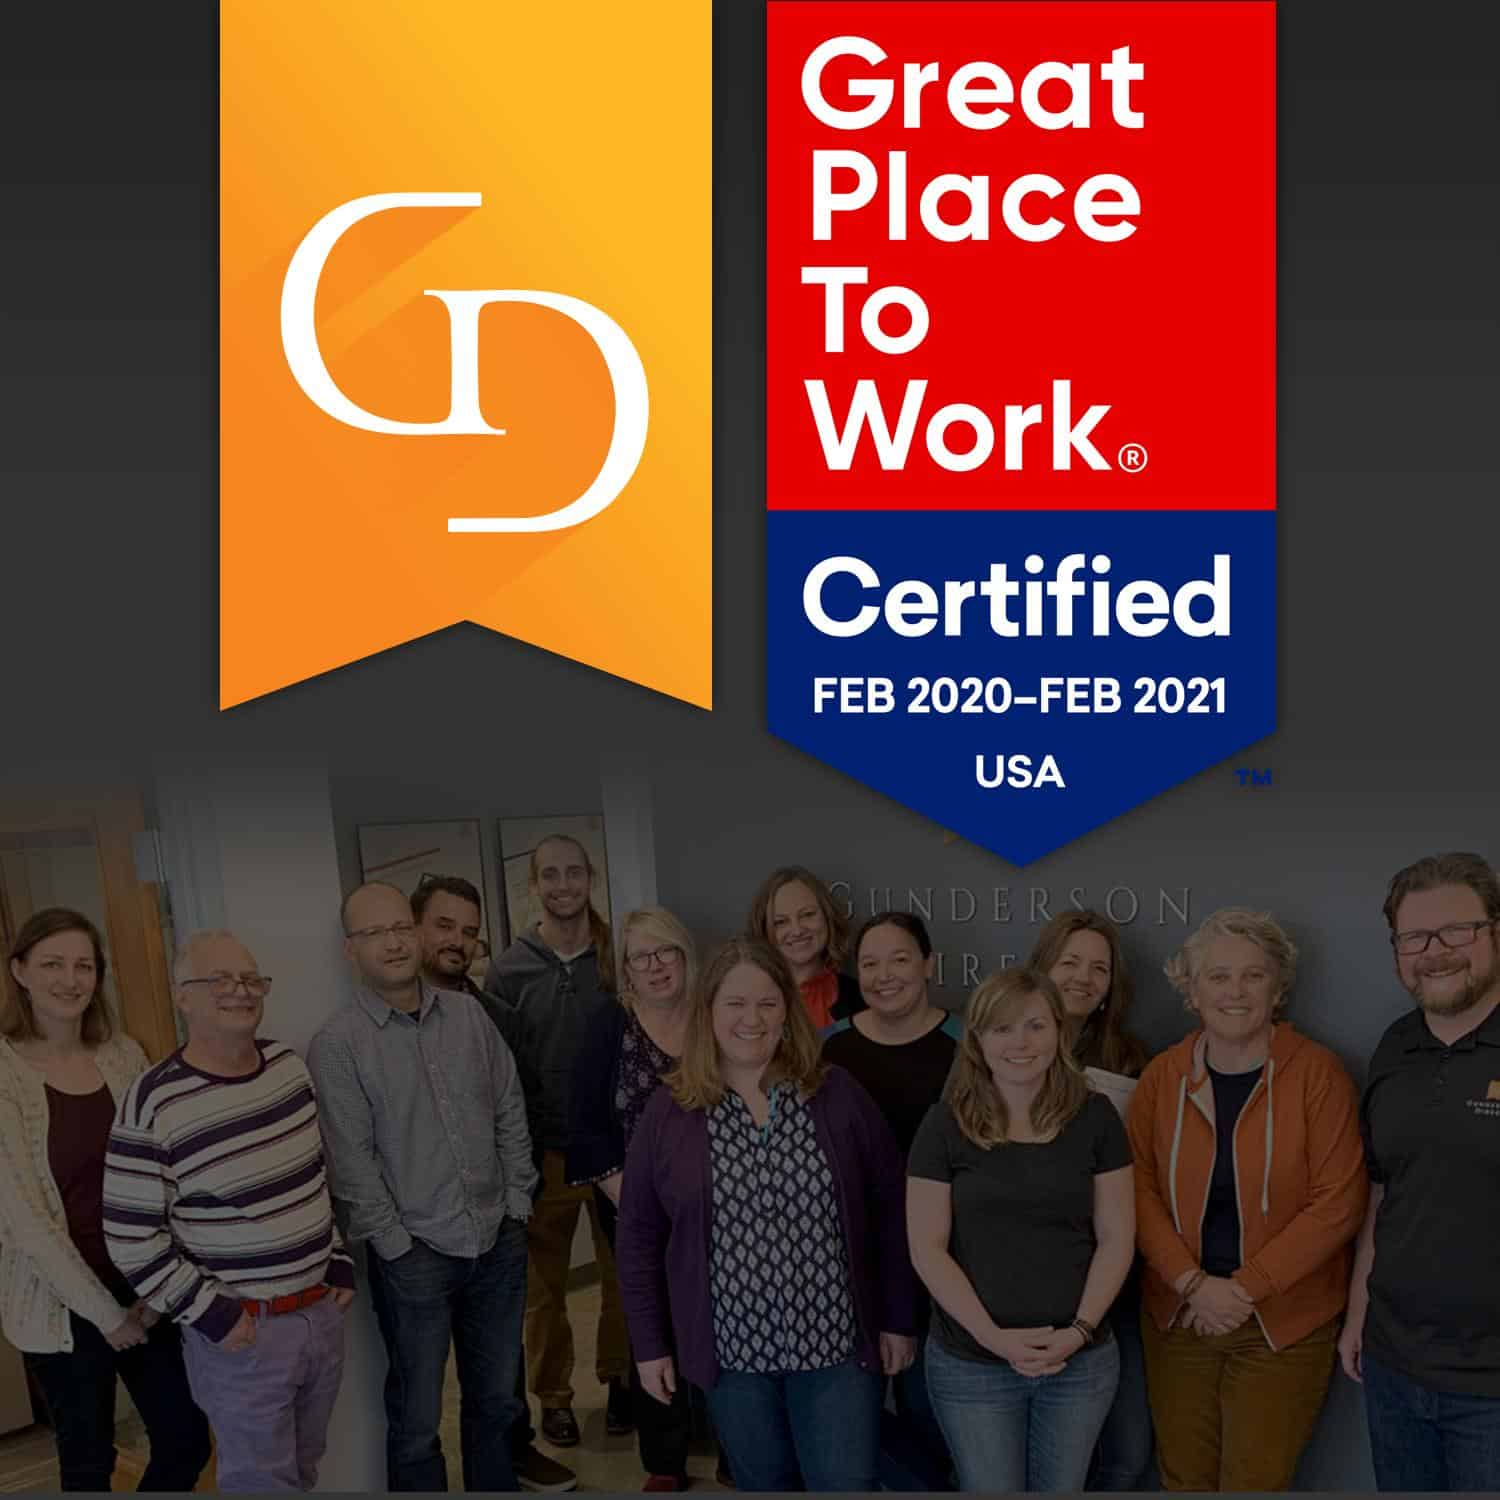 Gunderson Direct is Great Place to Work-Certified™